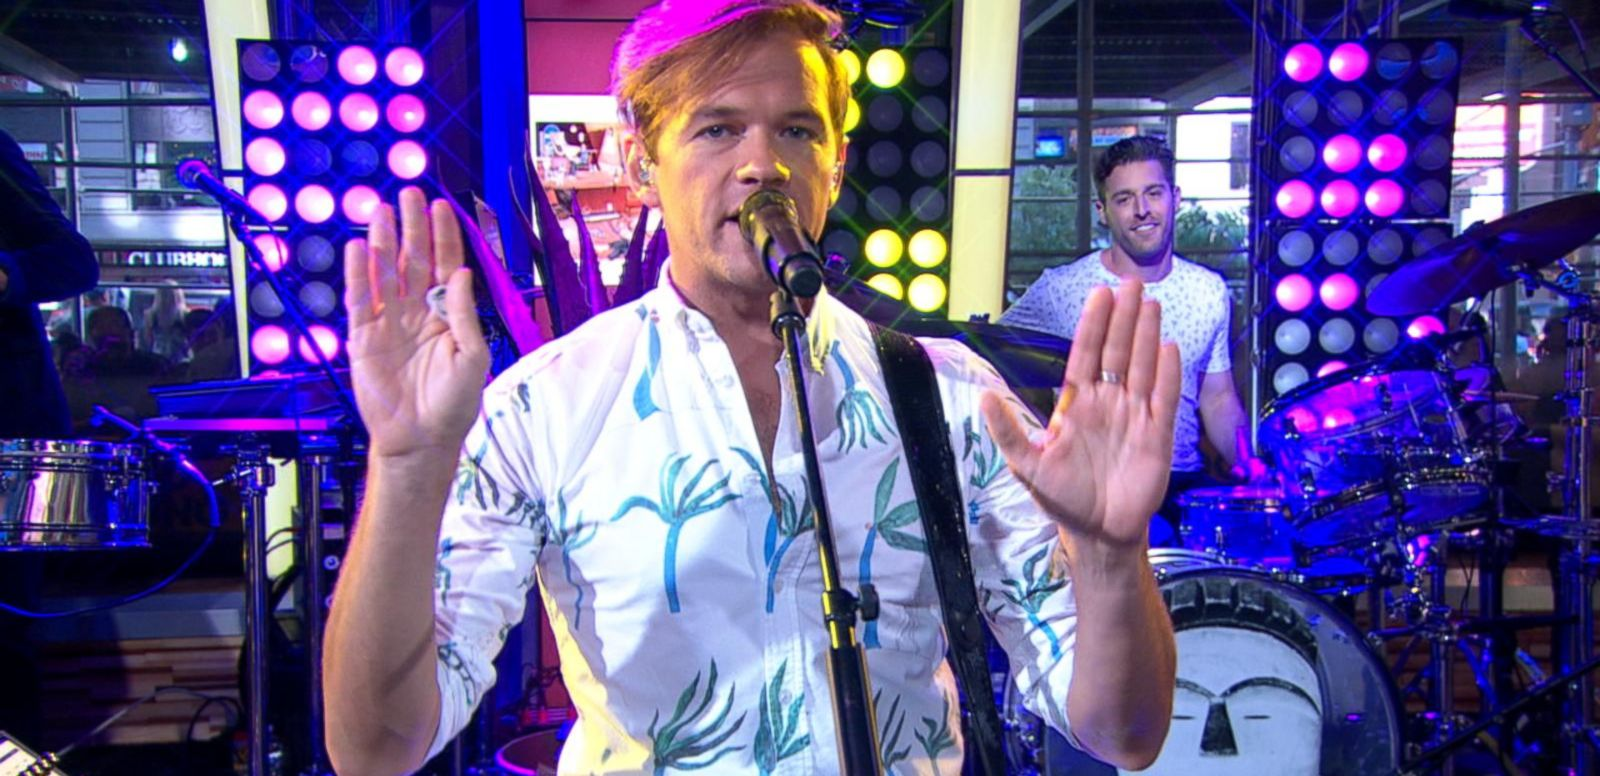 VIDEO: St. Lucia Performs 'Dancing On Glass' on 'GMA'